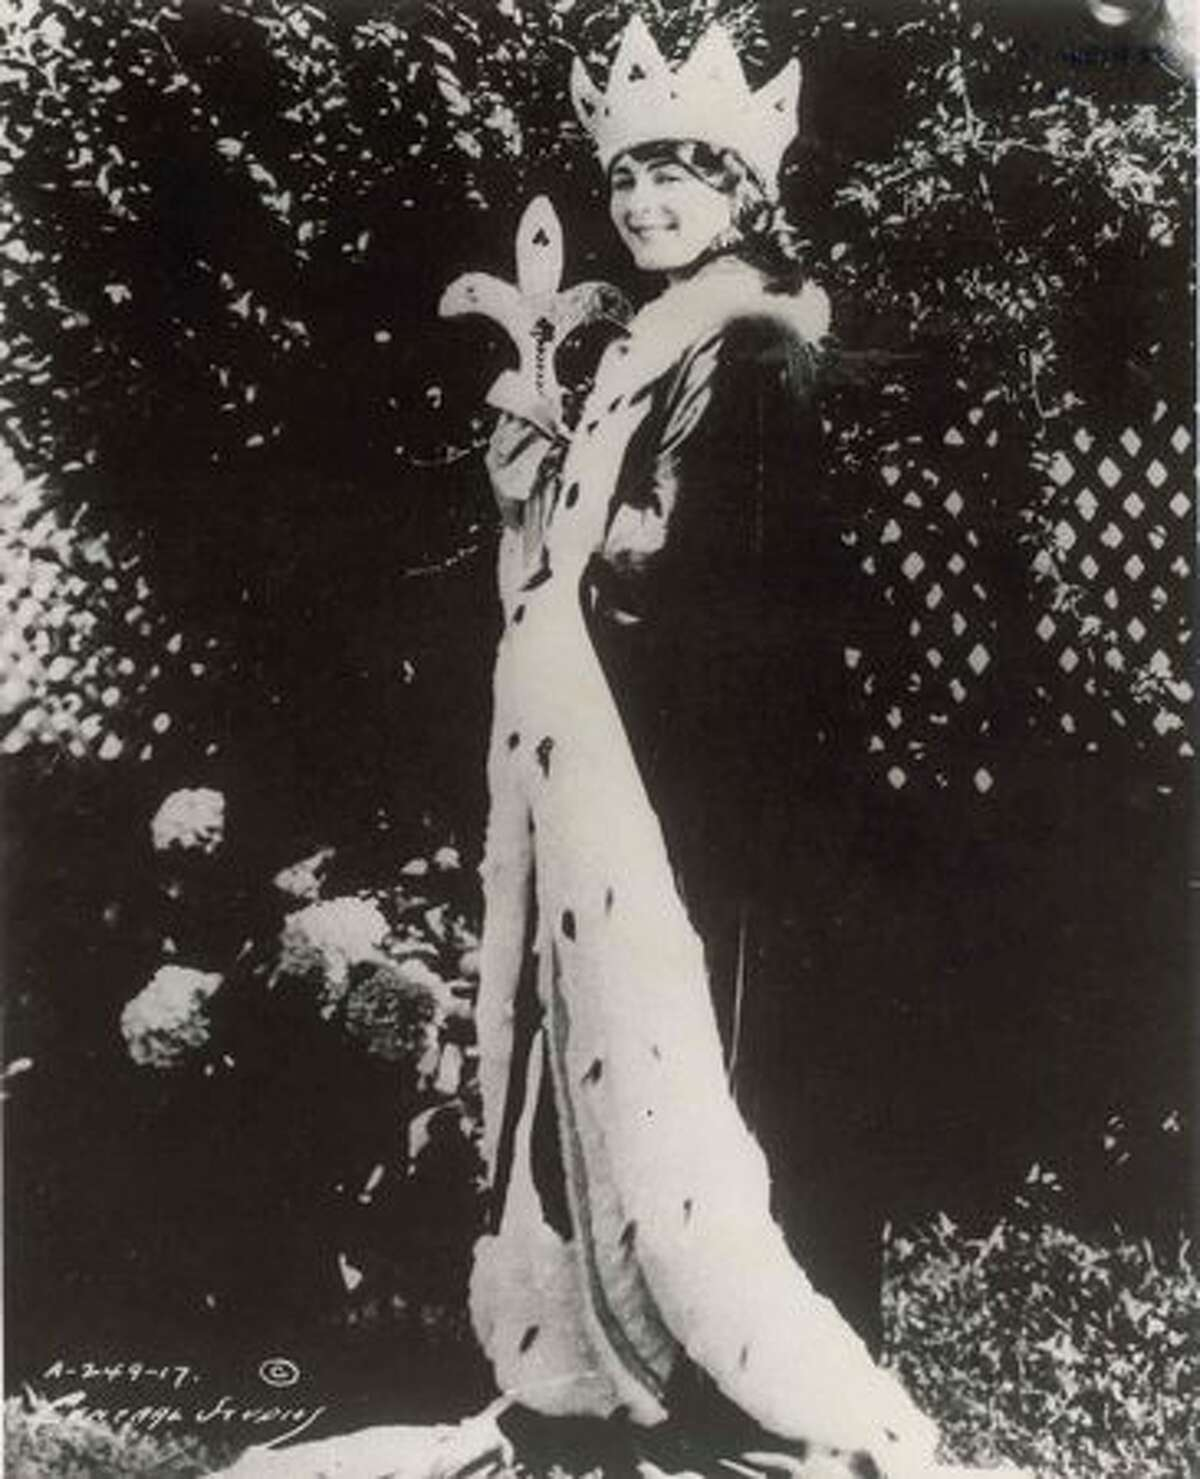 1923: Mary Katherine Campbell, Columbus, Ohio. Yes, again -- contestants were allowed to compete in more than one year back then. Campbell's the only repeat winner in the history of the pageant.